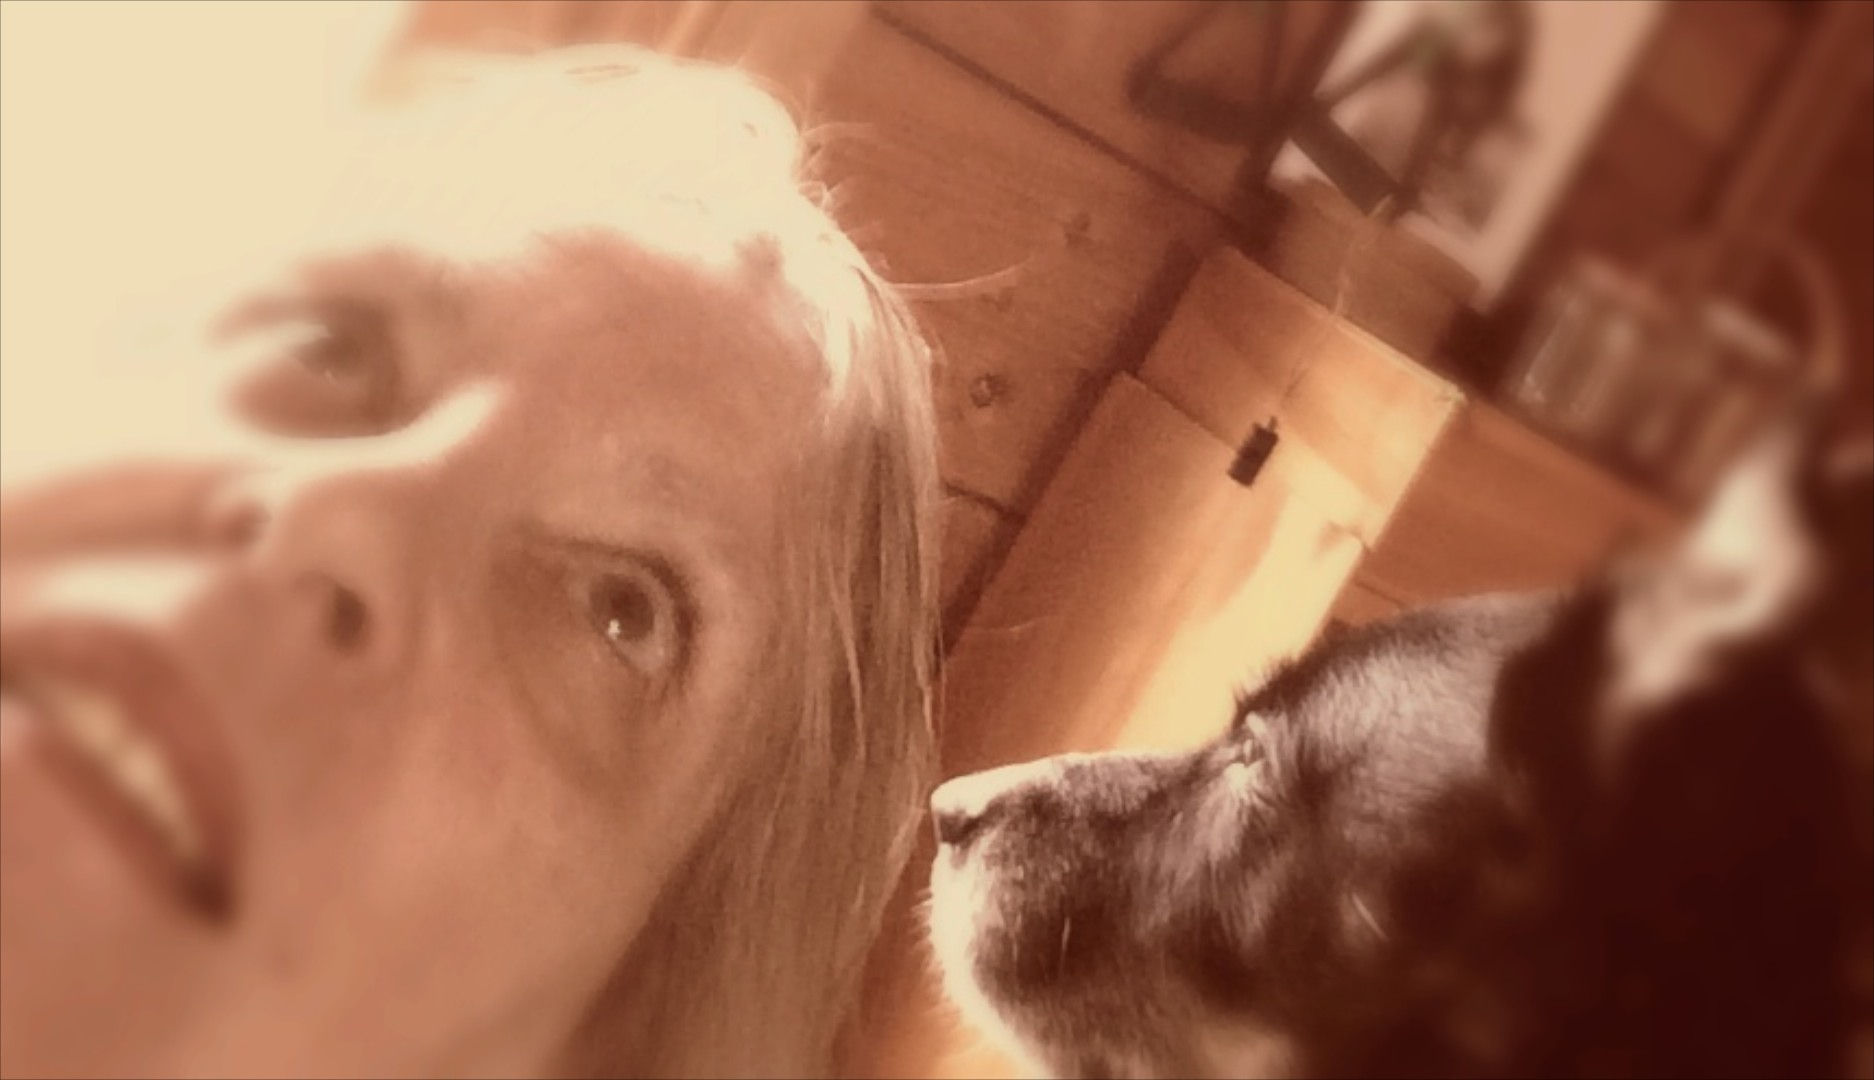 Lightly sepia tinted color selfie of artist Mignon Naegeli and her dog Basquiat.